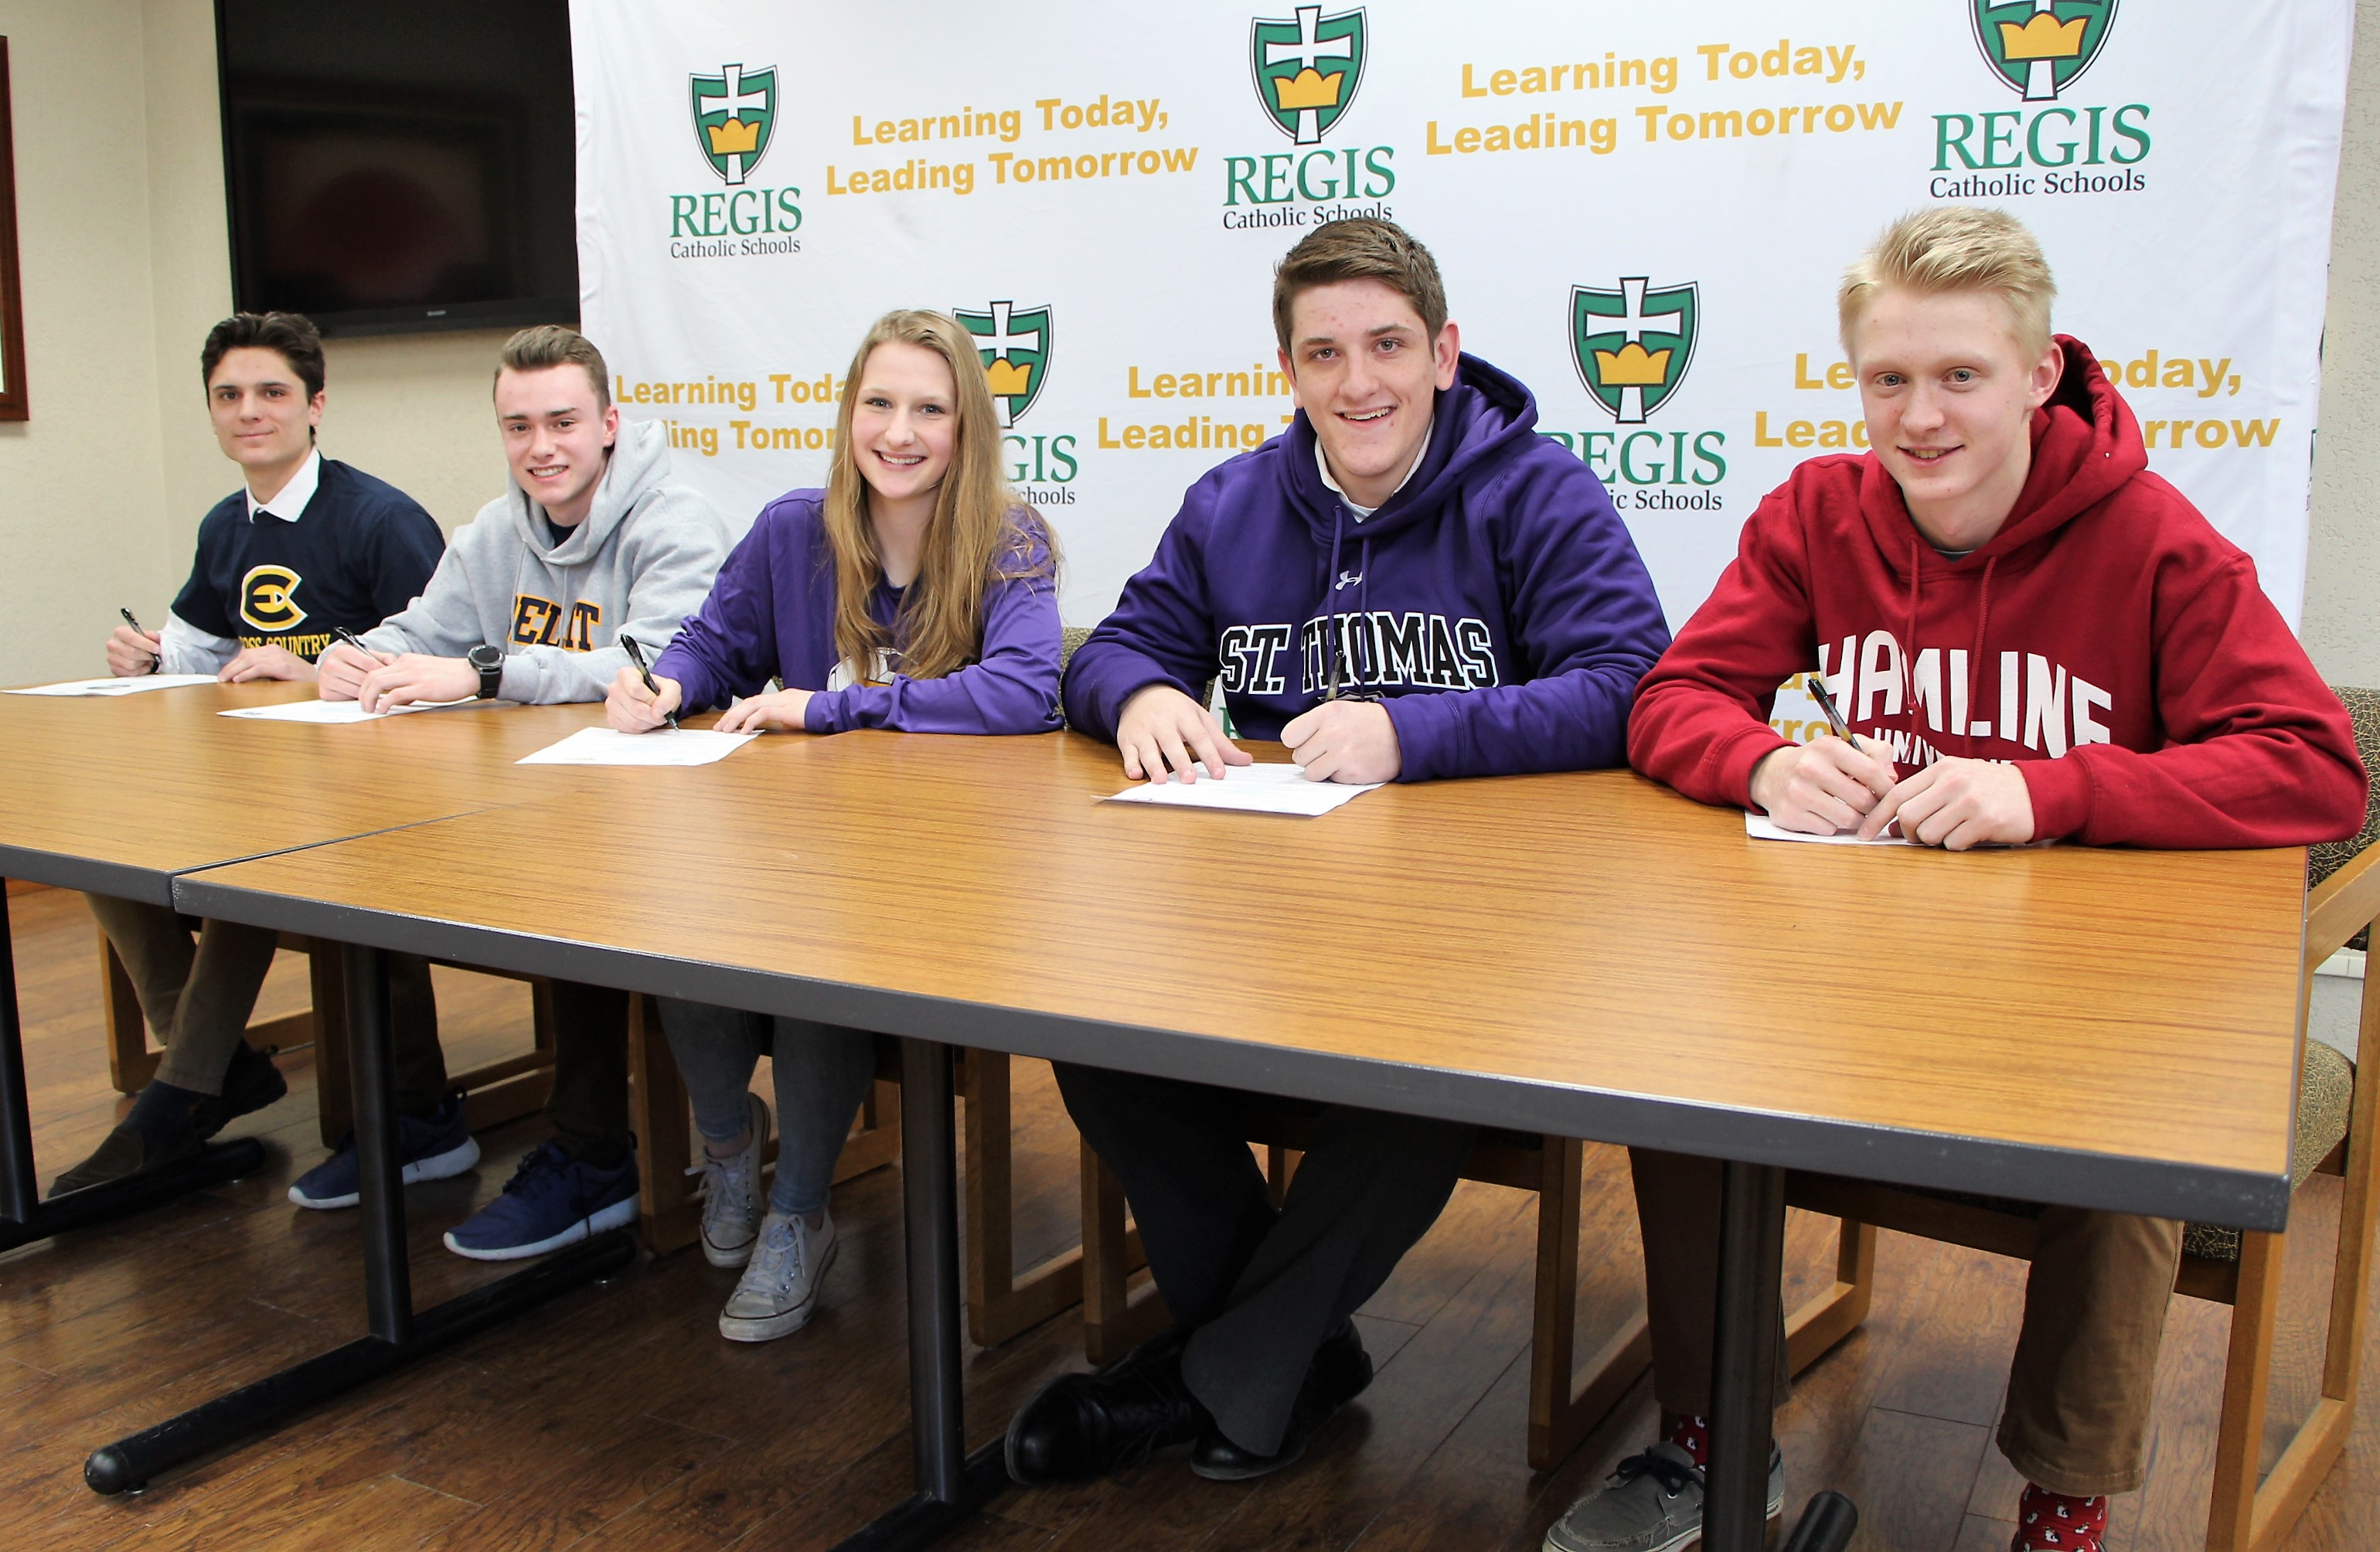 Five Regis High School athletes sign Letters of Intent